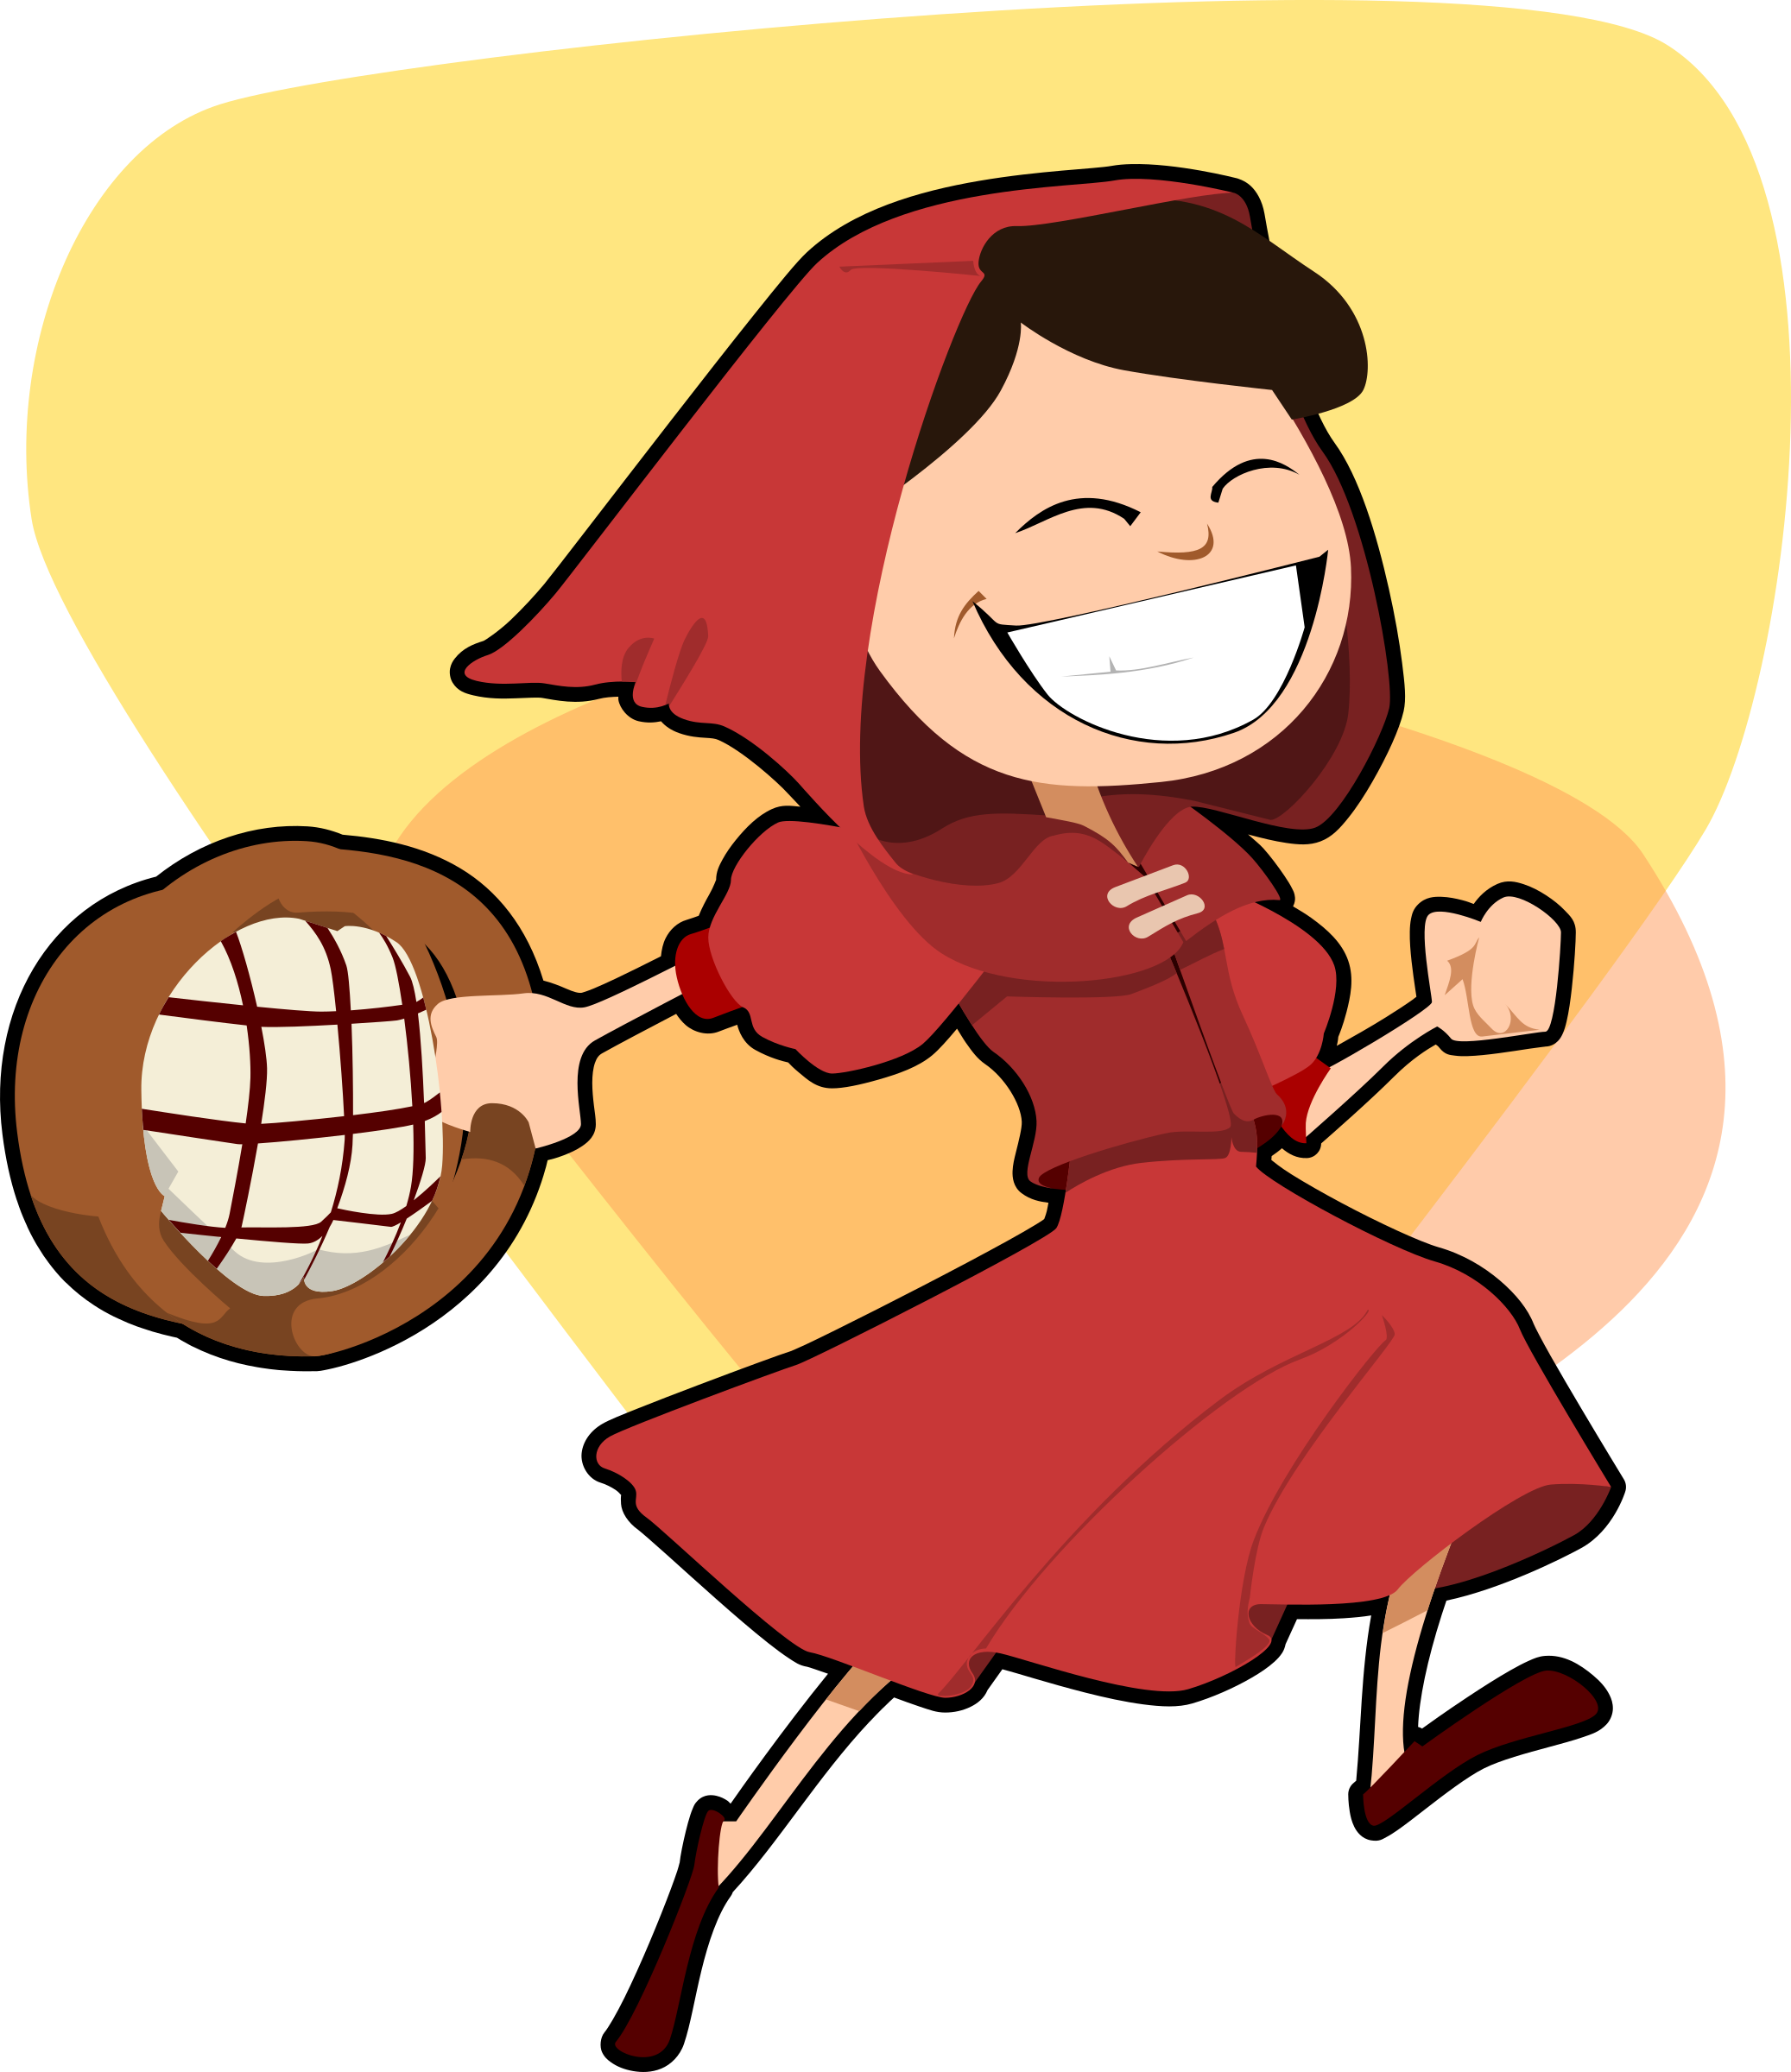 clipart little red riding hood rh openclipart org little red riding hood clipart red riding hood characters clipart